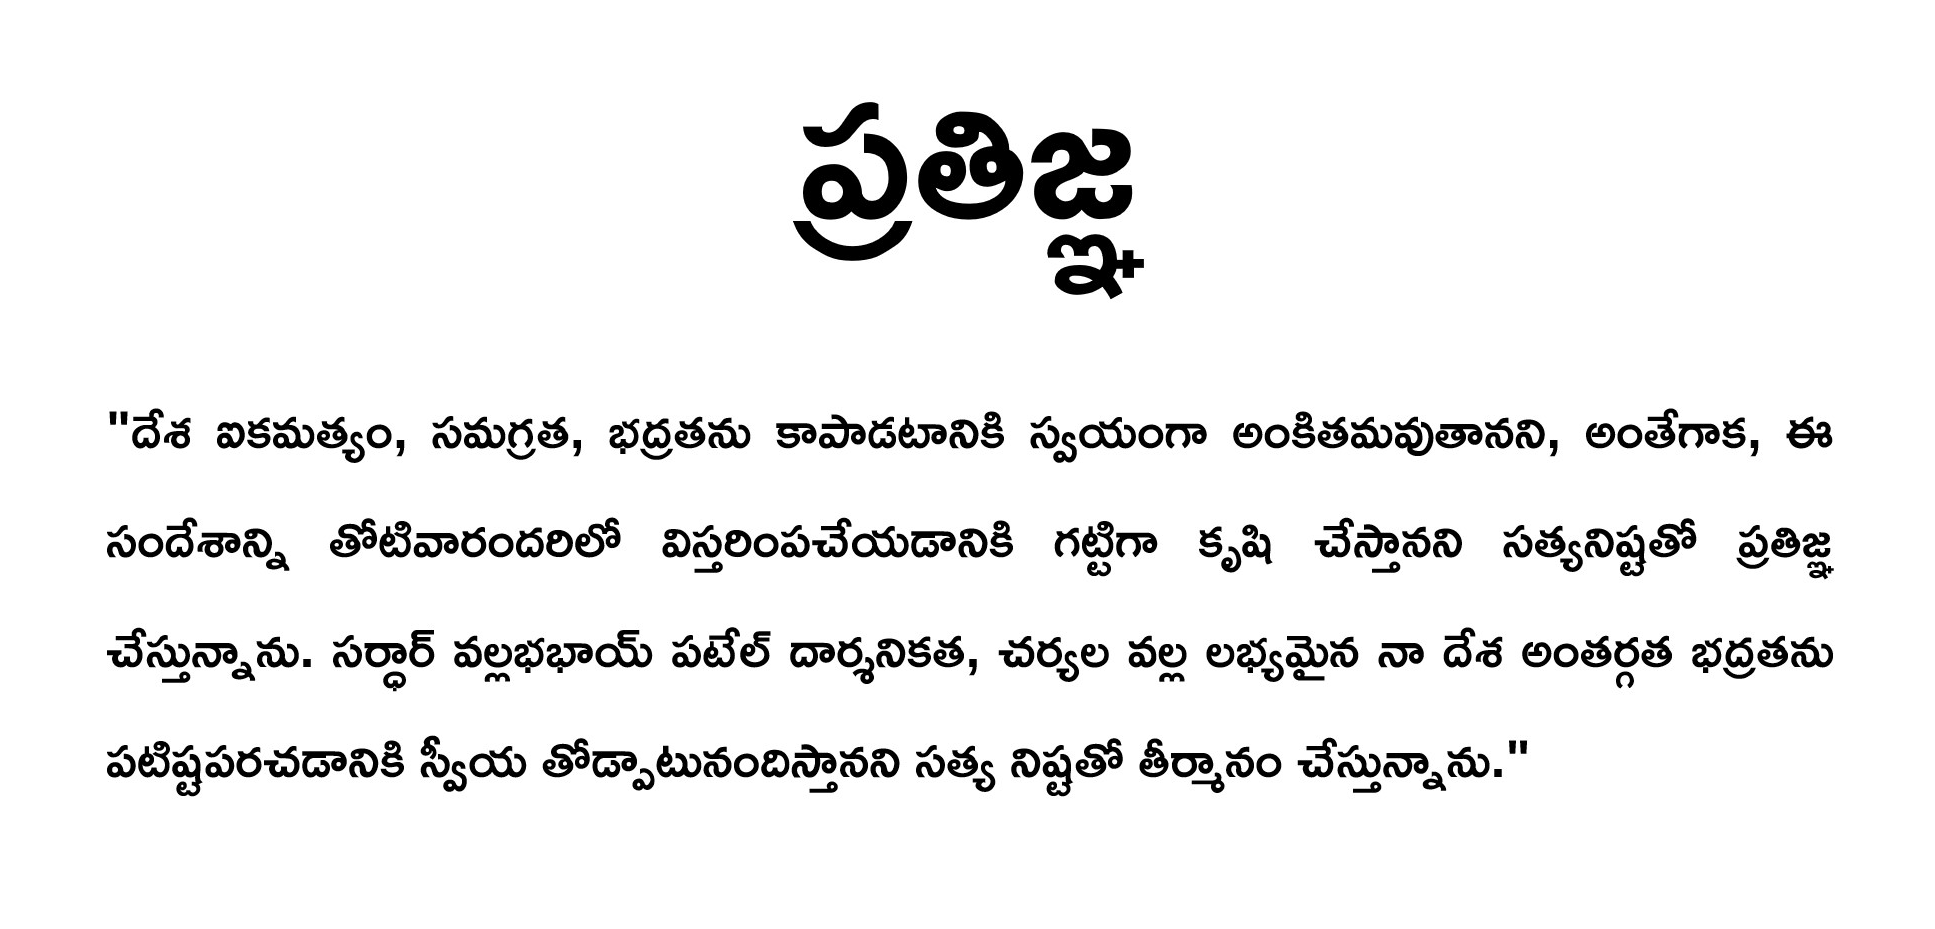 Rashtriya Ekta Diwas Pledge in Telugu